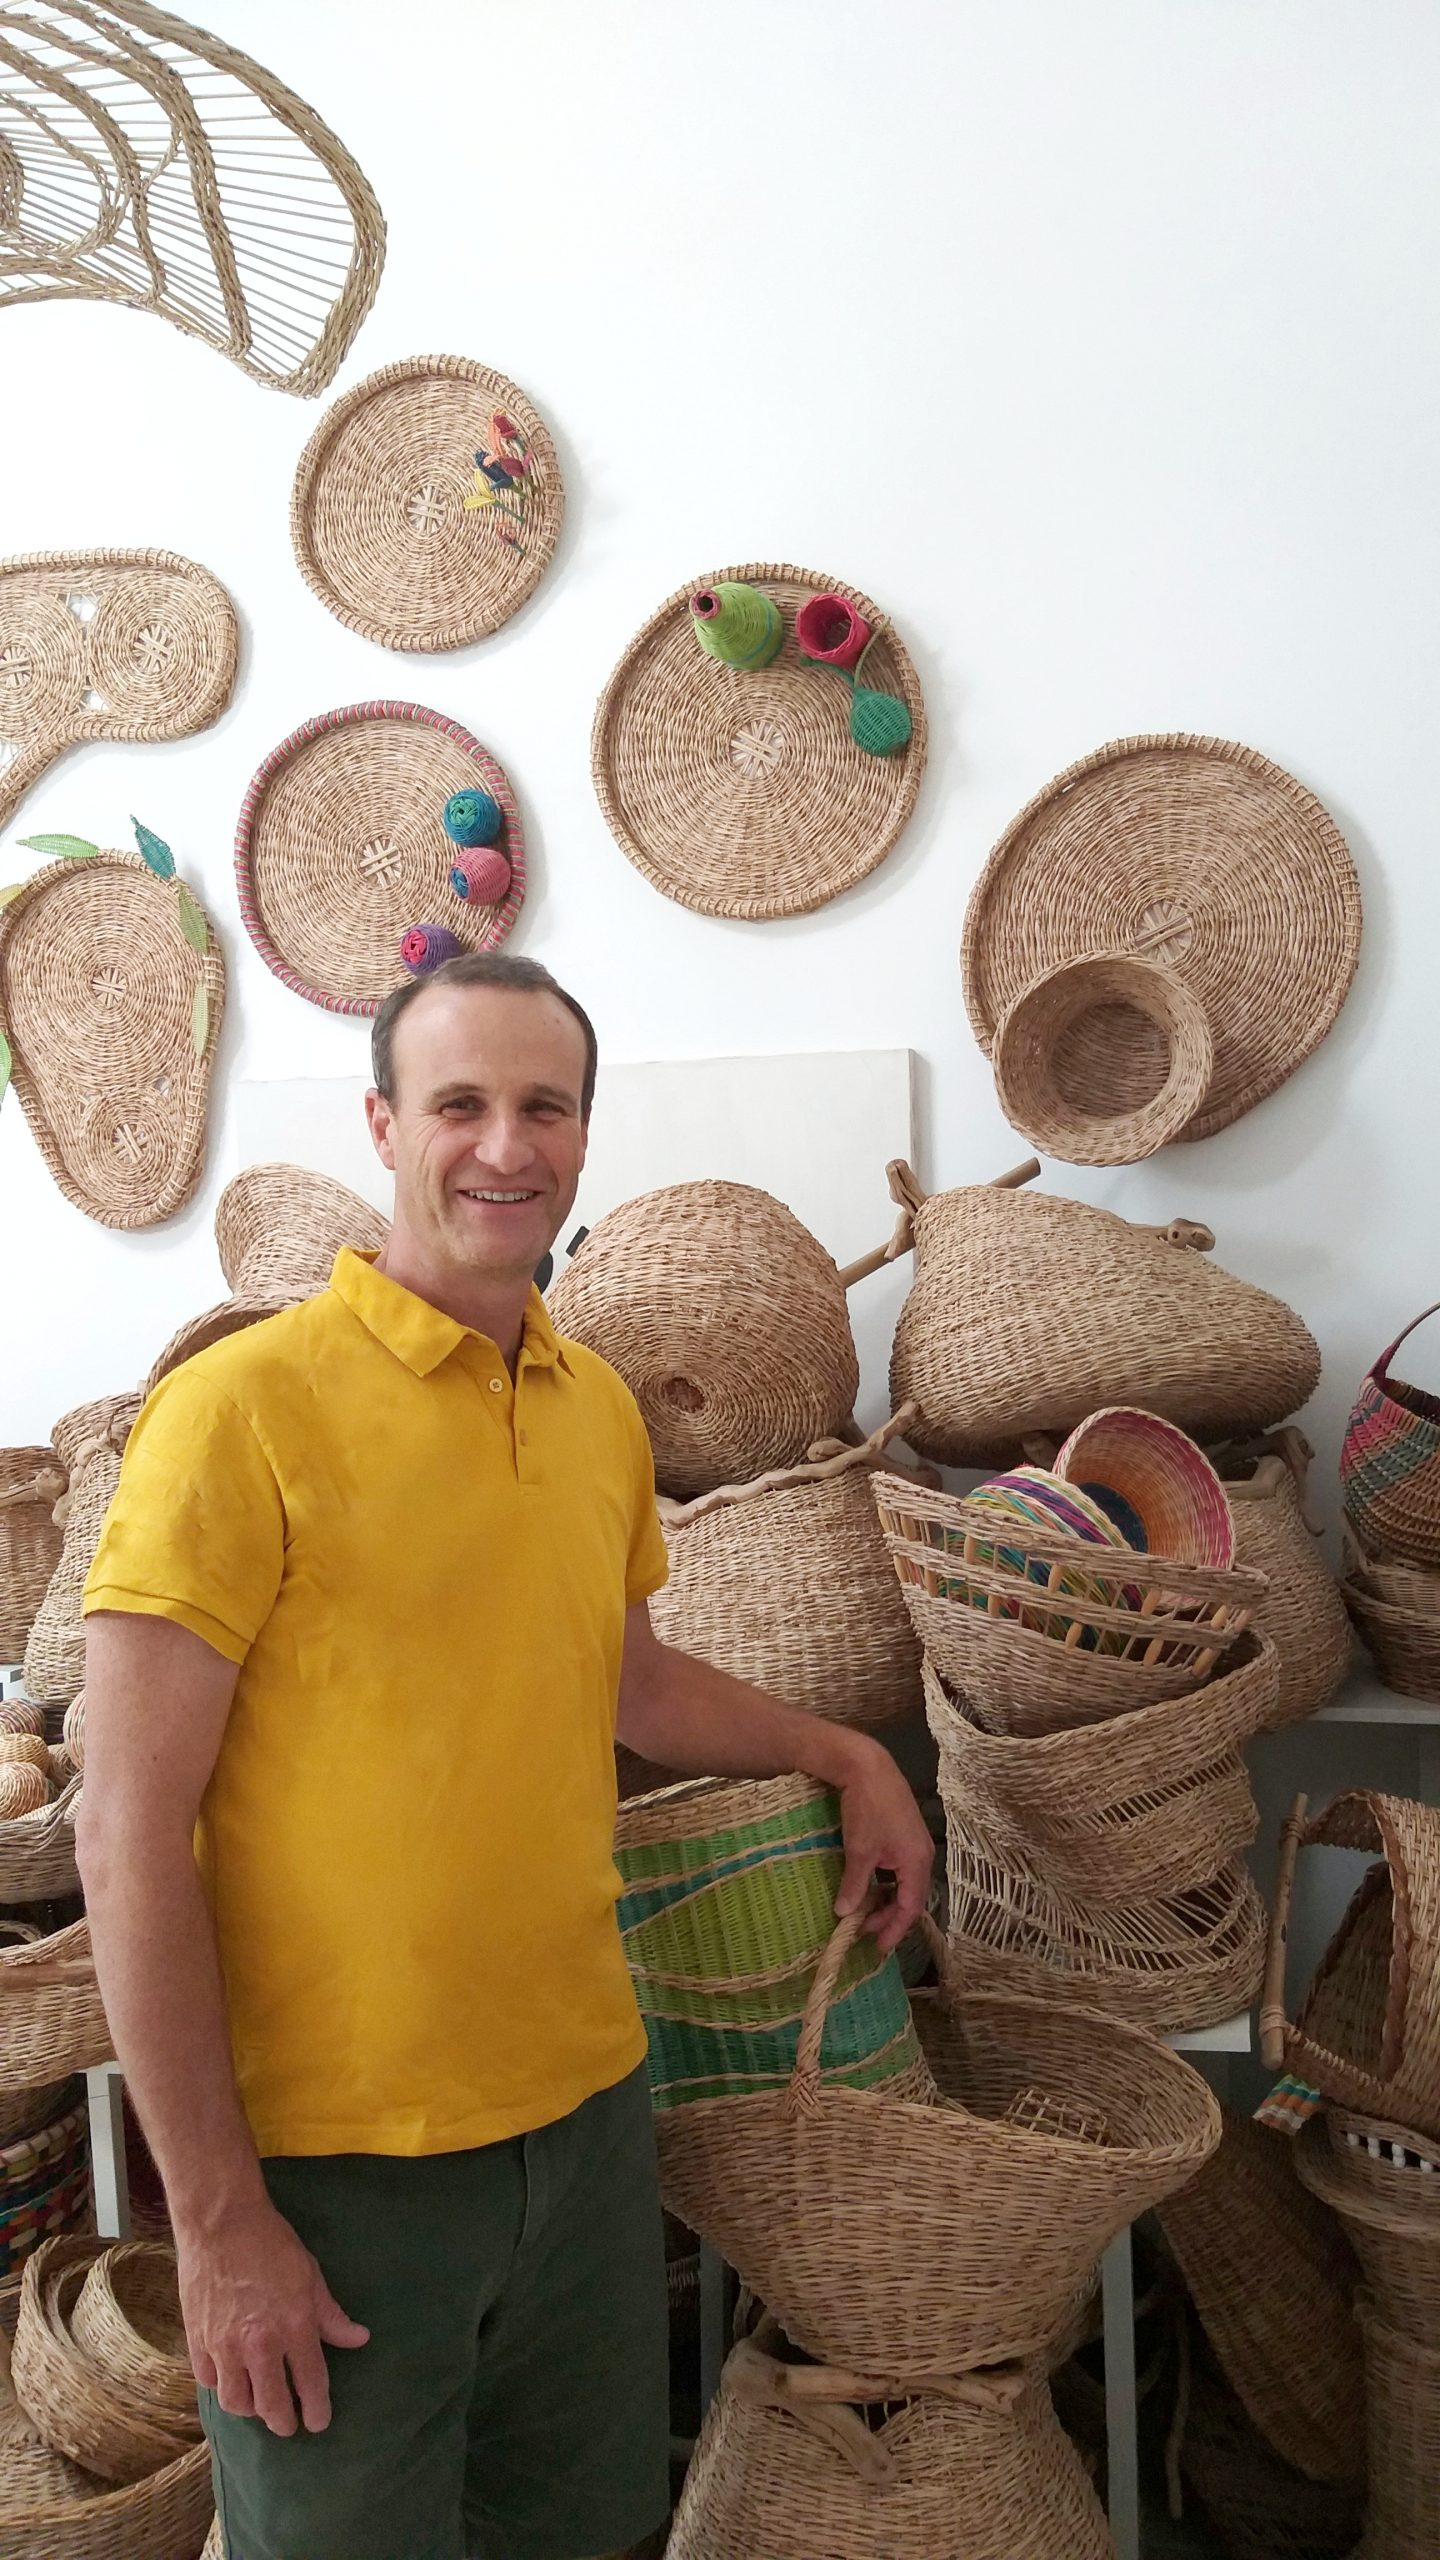 David Grushko - Basket - portrait